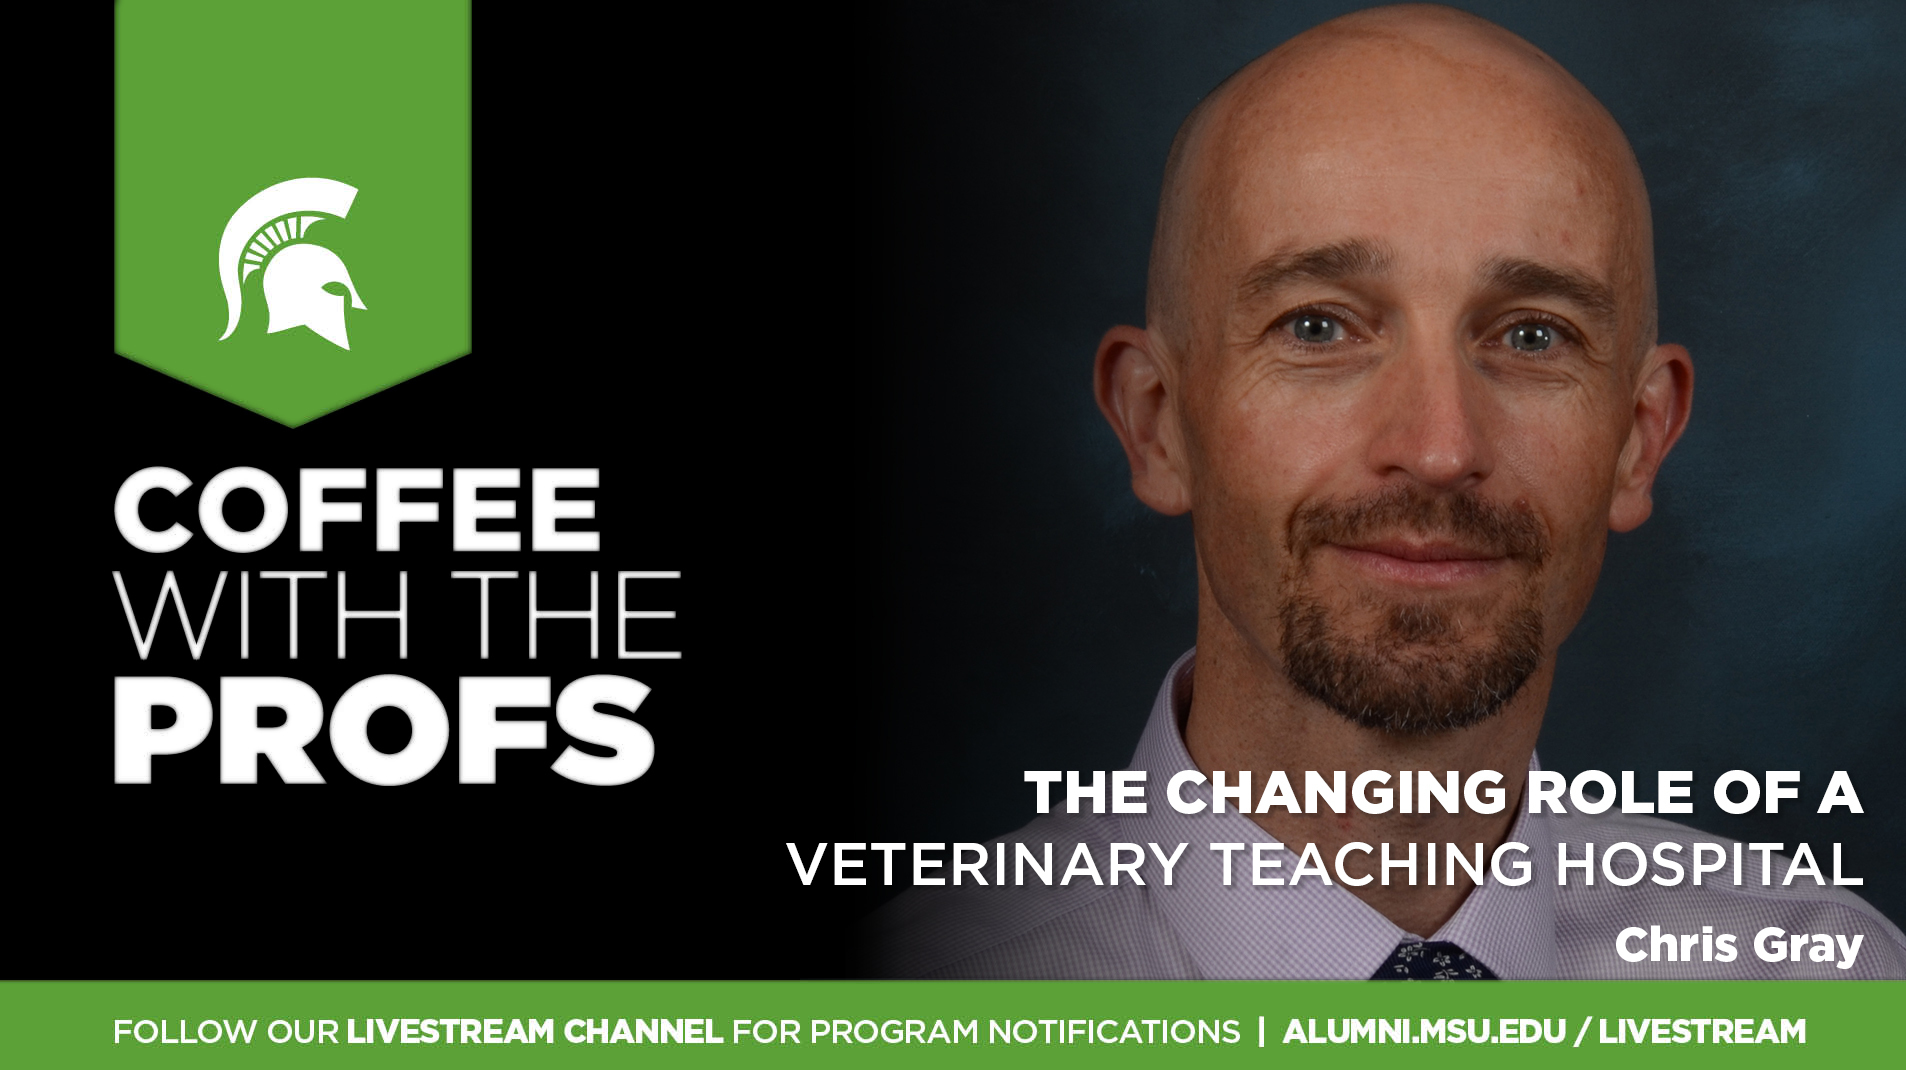 Livestream cover image for CWTP   The Changing Role of a Veterinary Teaching Hospital